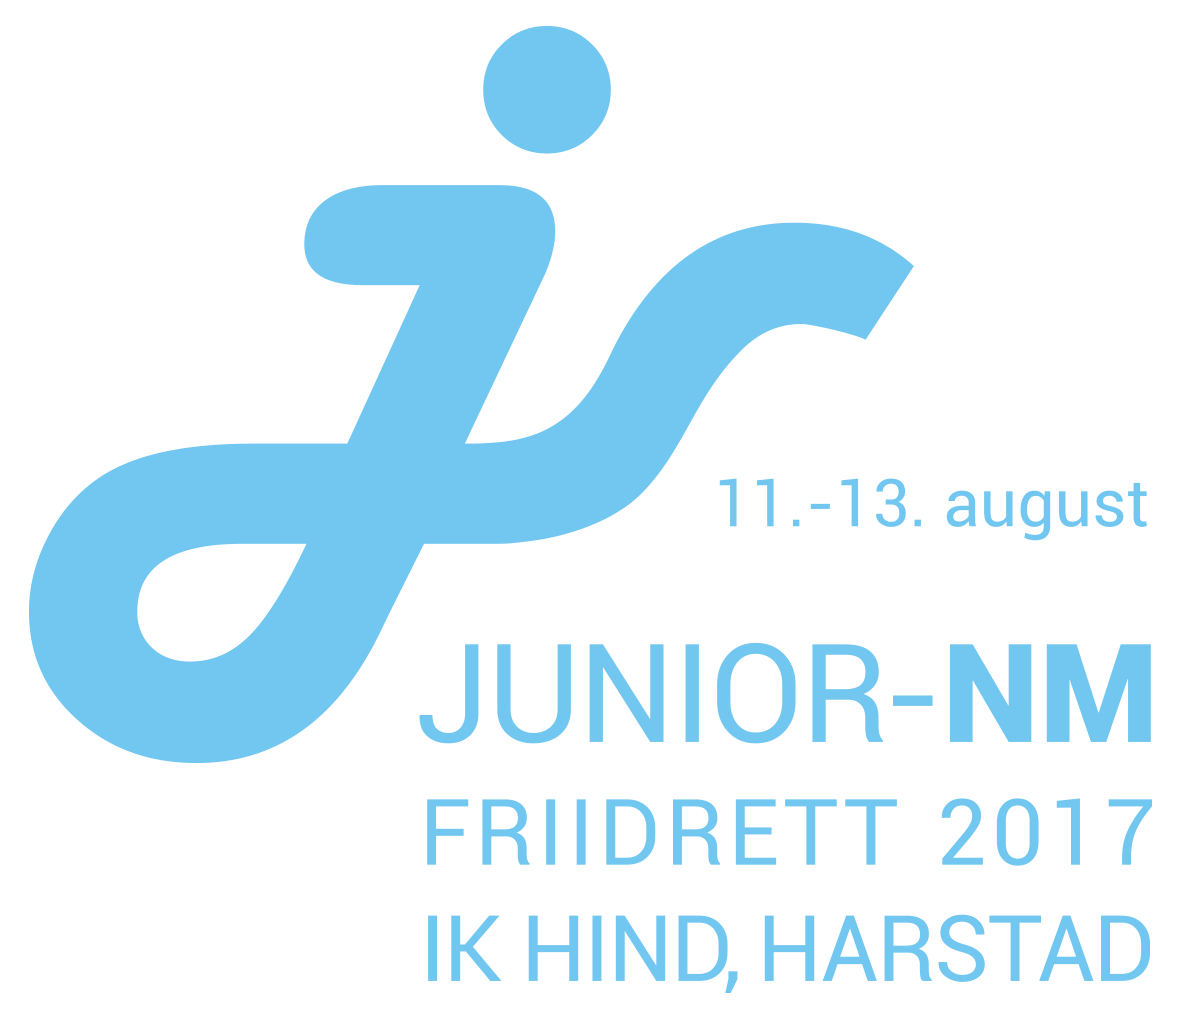 Junior-NM